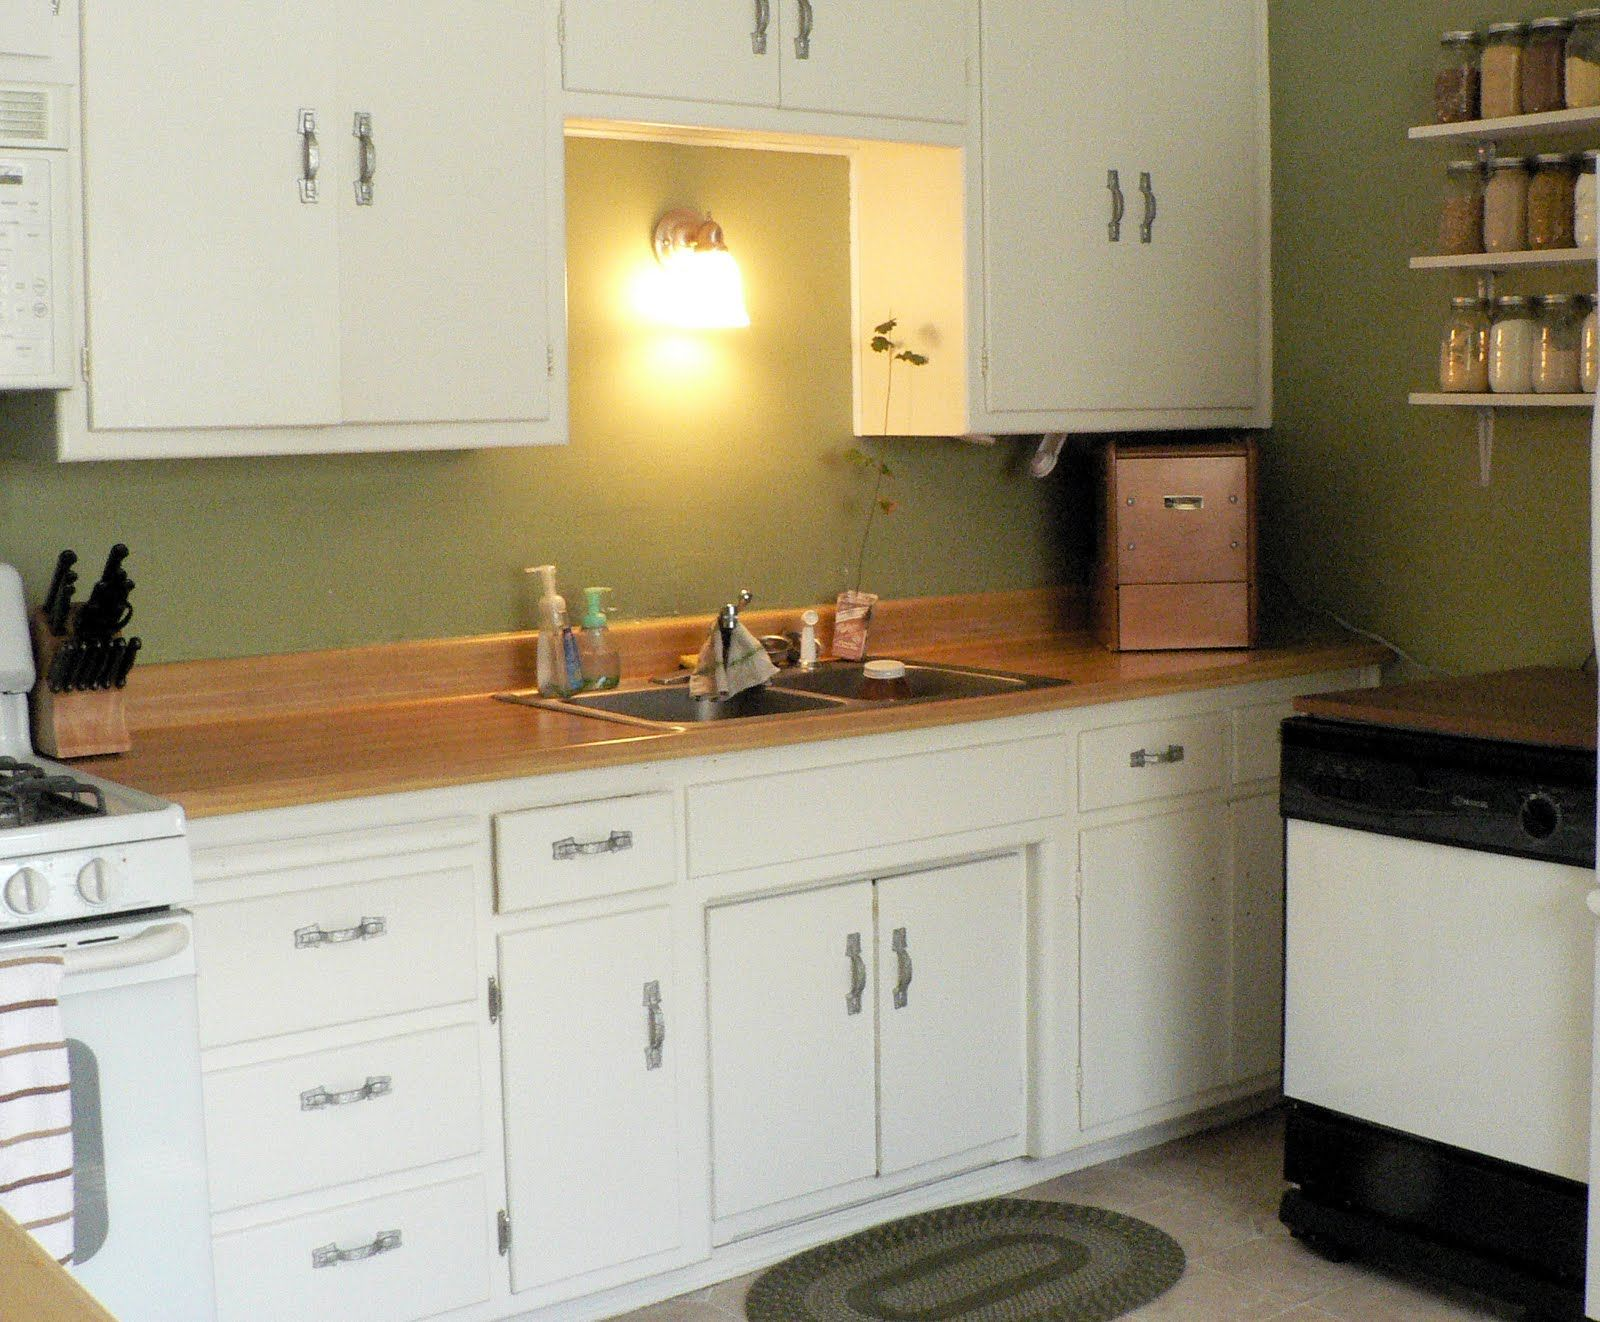 Inspiring sage green kitchen cabinets with wooden countertops also